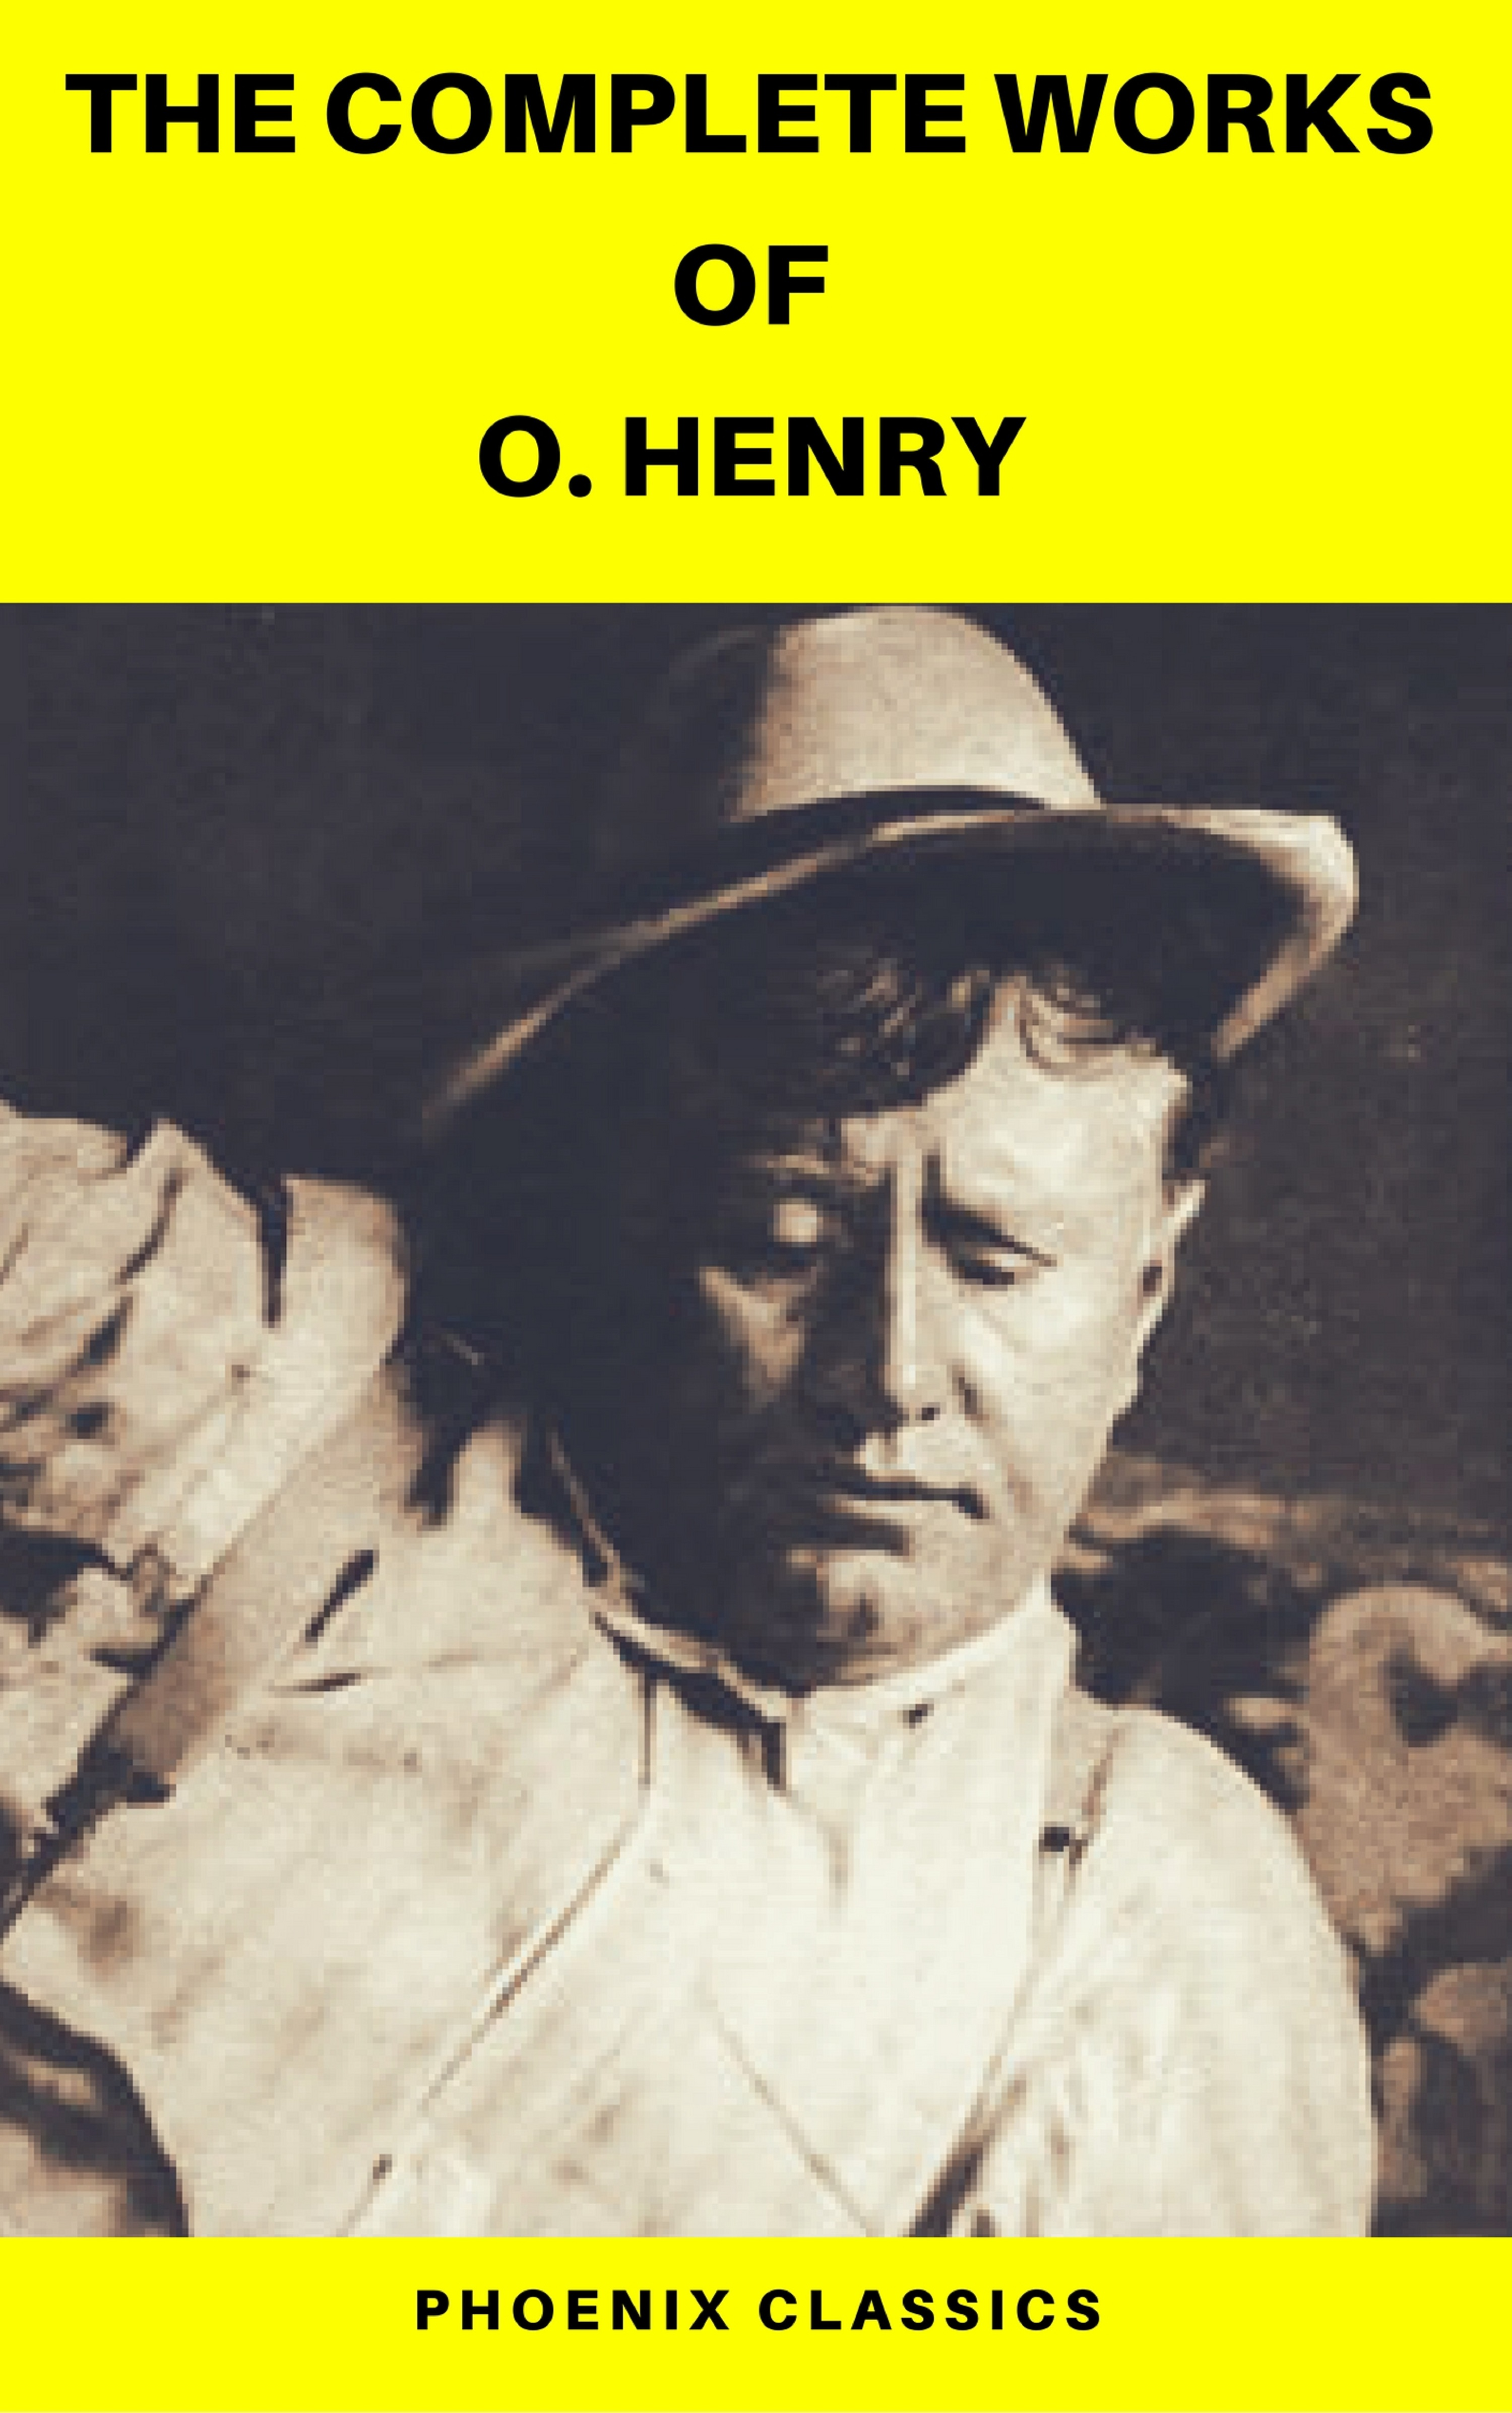 O. Hooper Henry The Complete Works of O. Henry: Short Stories, Poems and Letters (Phoenix Classics) complete poems and selected letters of john keats